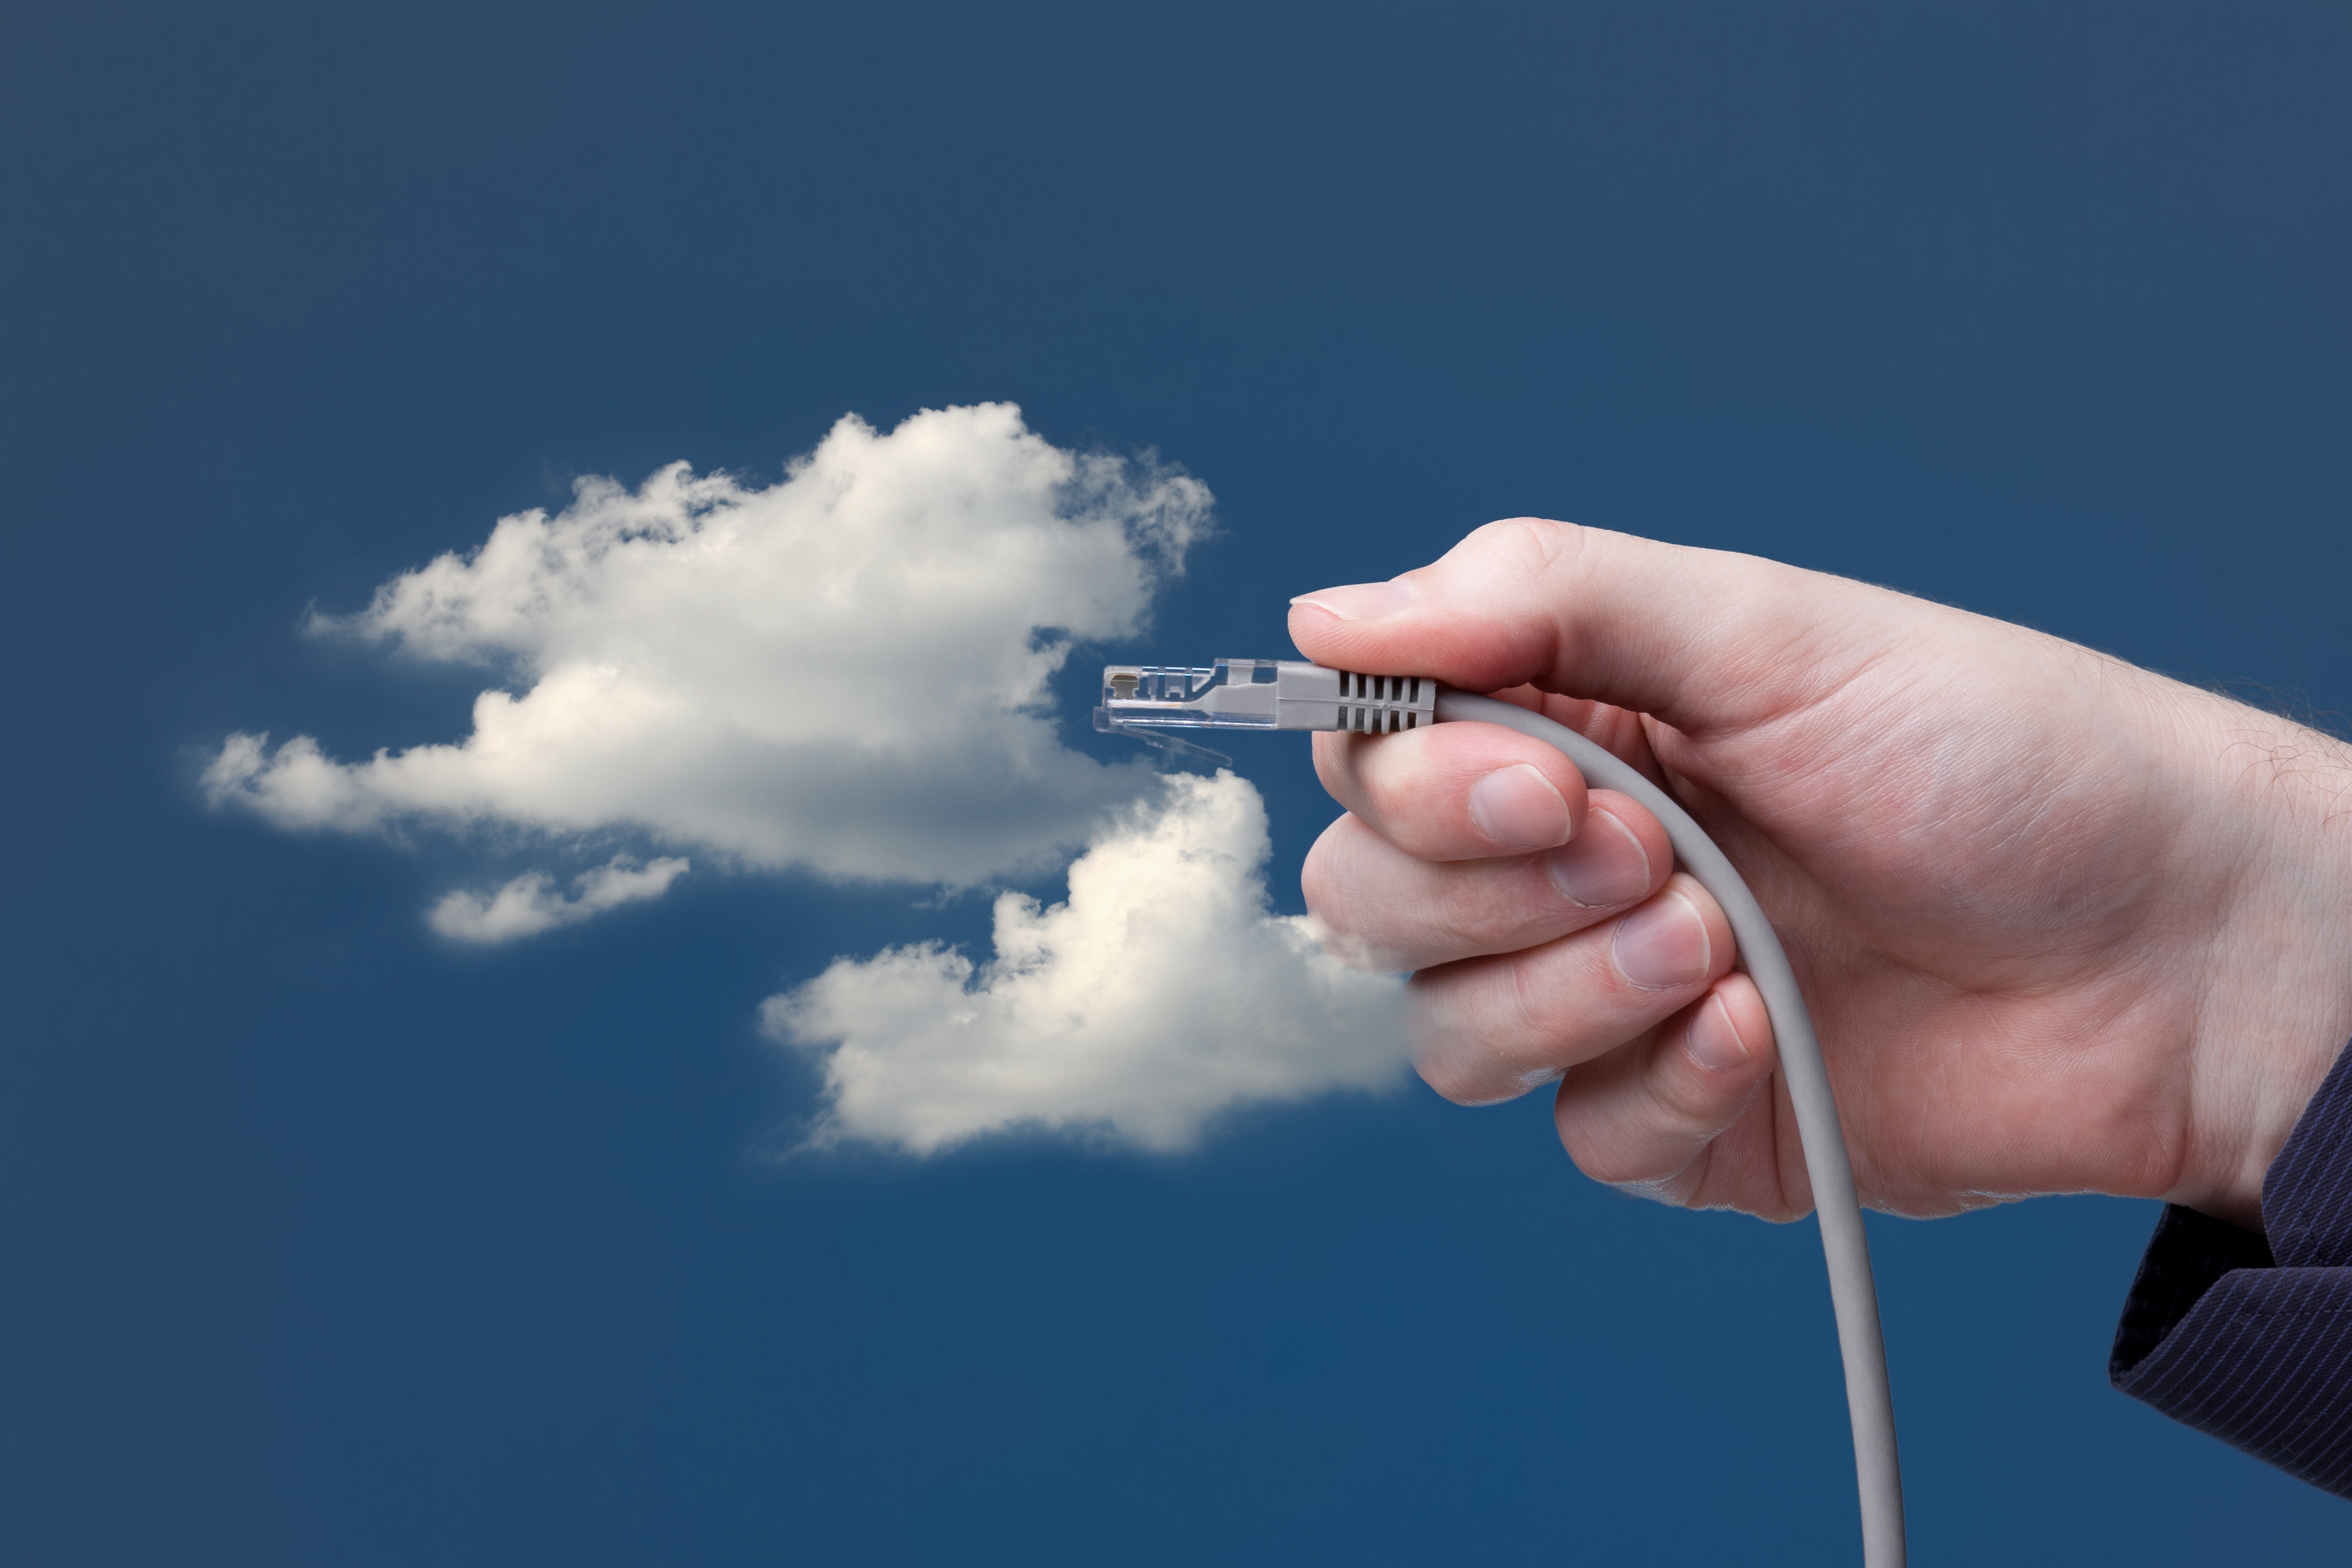 Hand plugging a network into a cloud